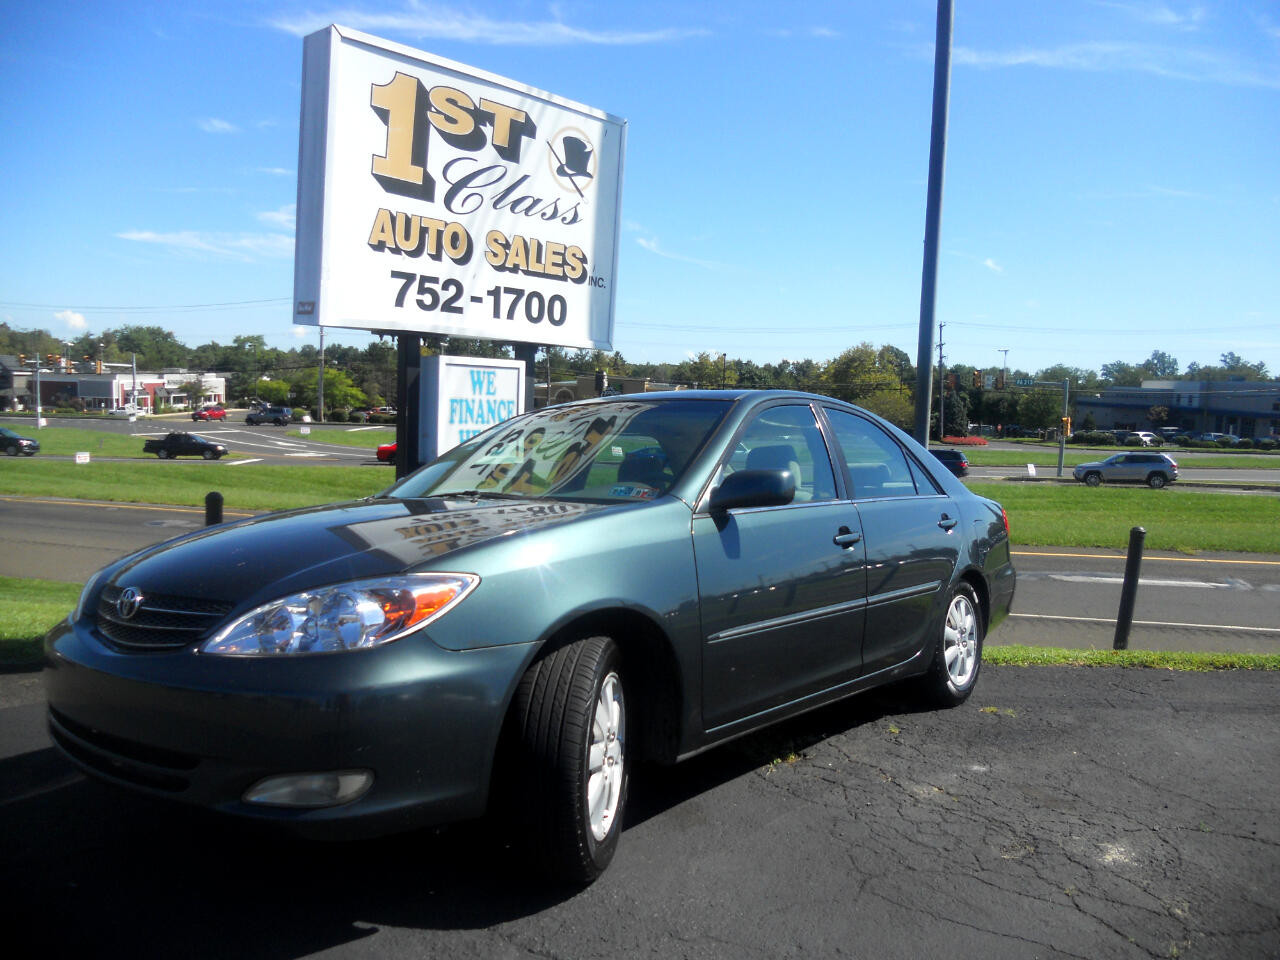 used 2003 toyota camry xle for sale in langhorne pa 19047 1st class auto sales langhorne pa 19047 1st class auto sales